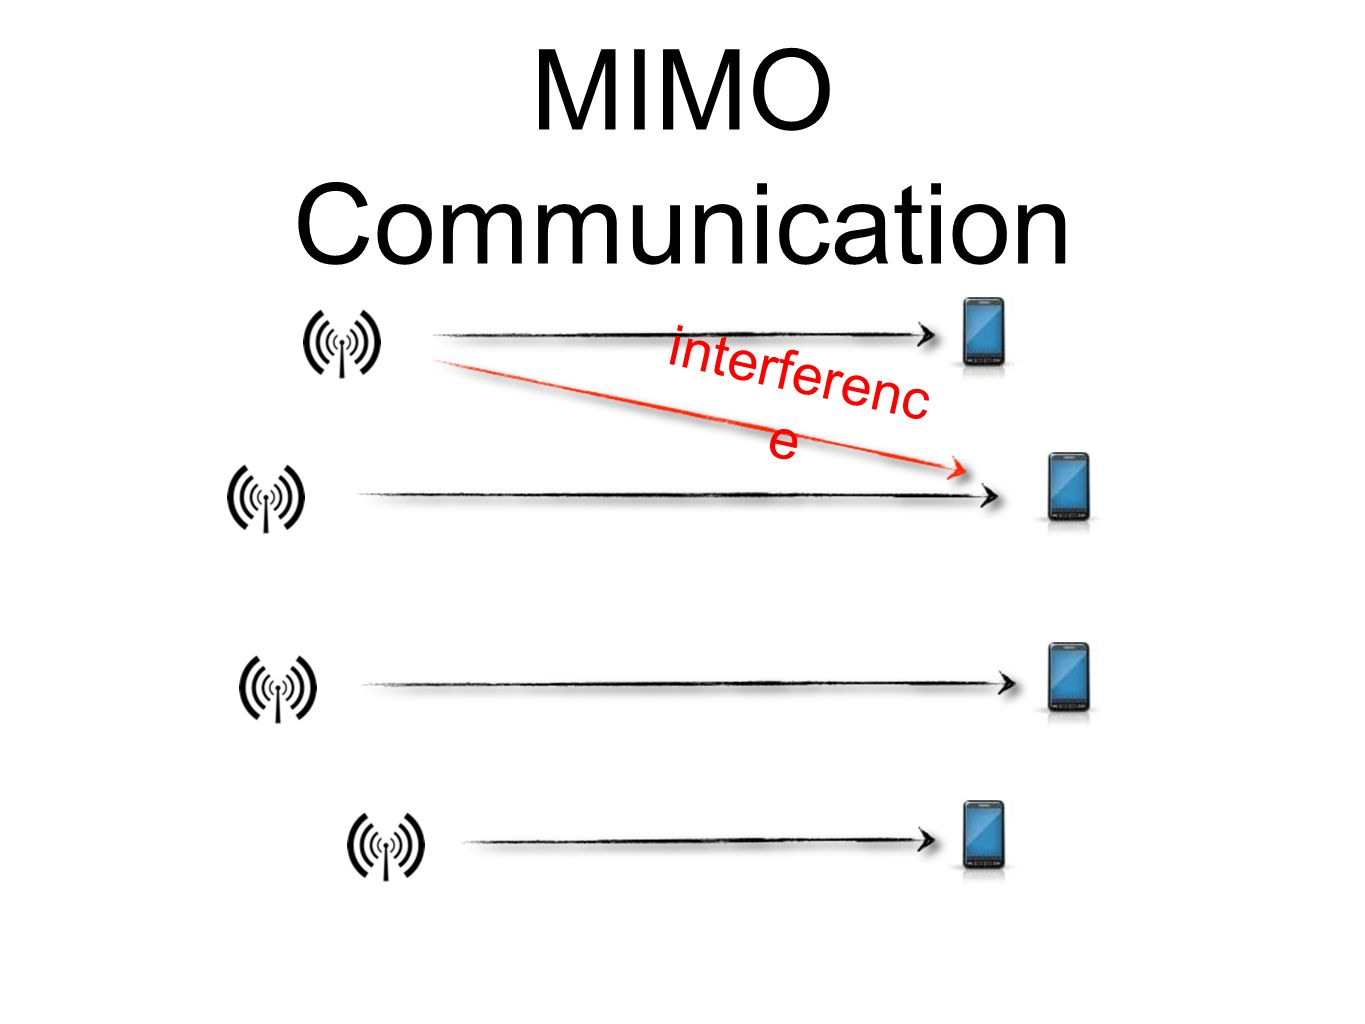 MIMO Communication interference